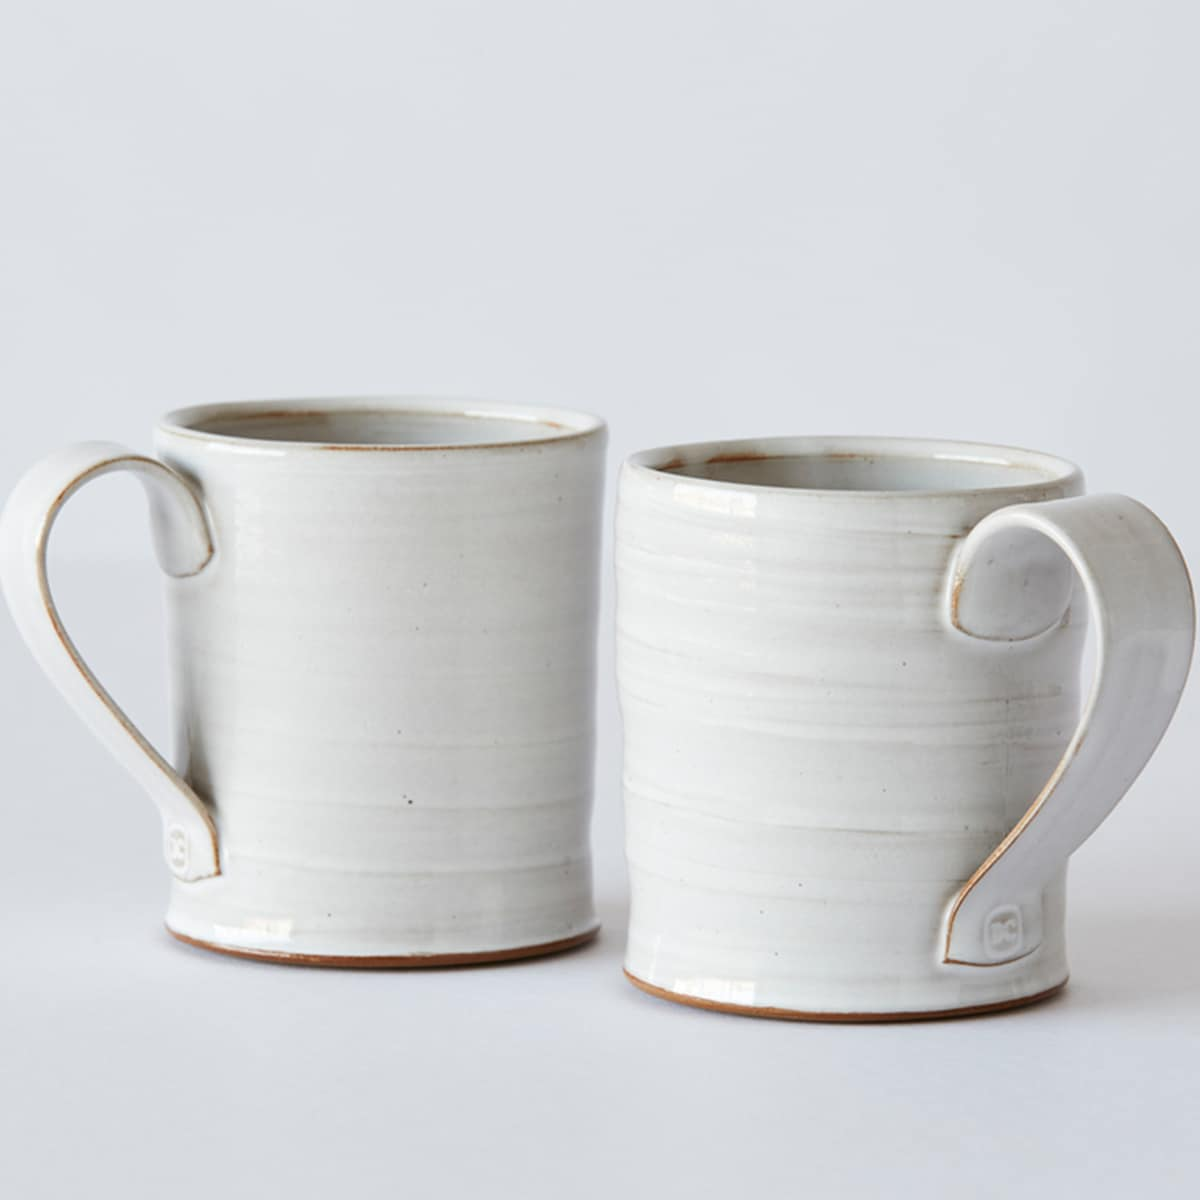 10 Pretty Mugs to Dress Up Your Desk: gallery image 4